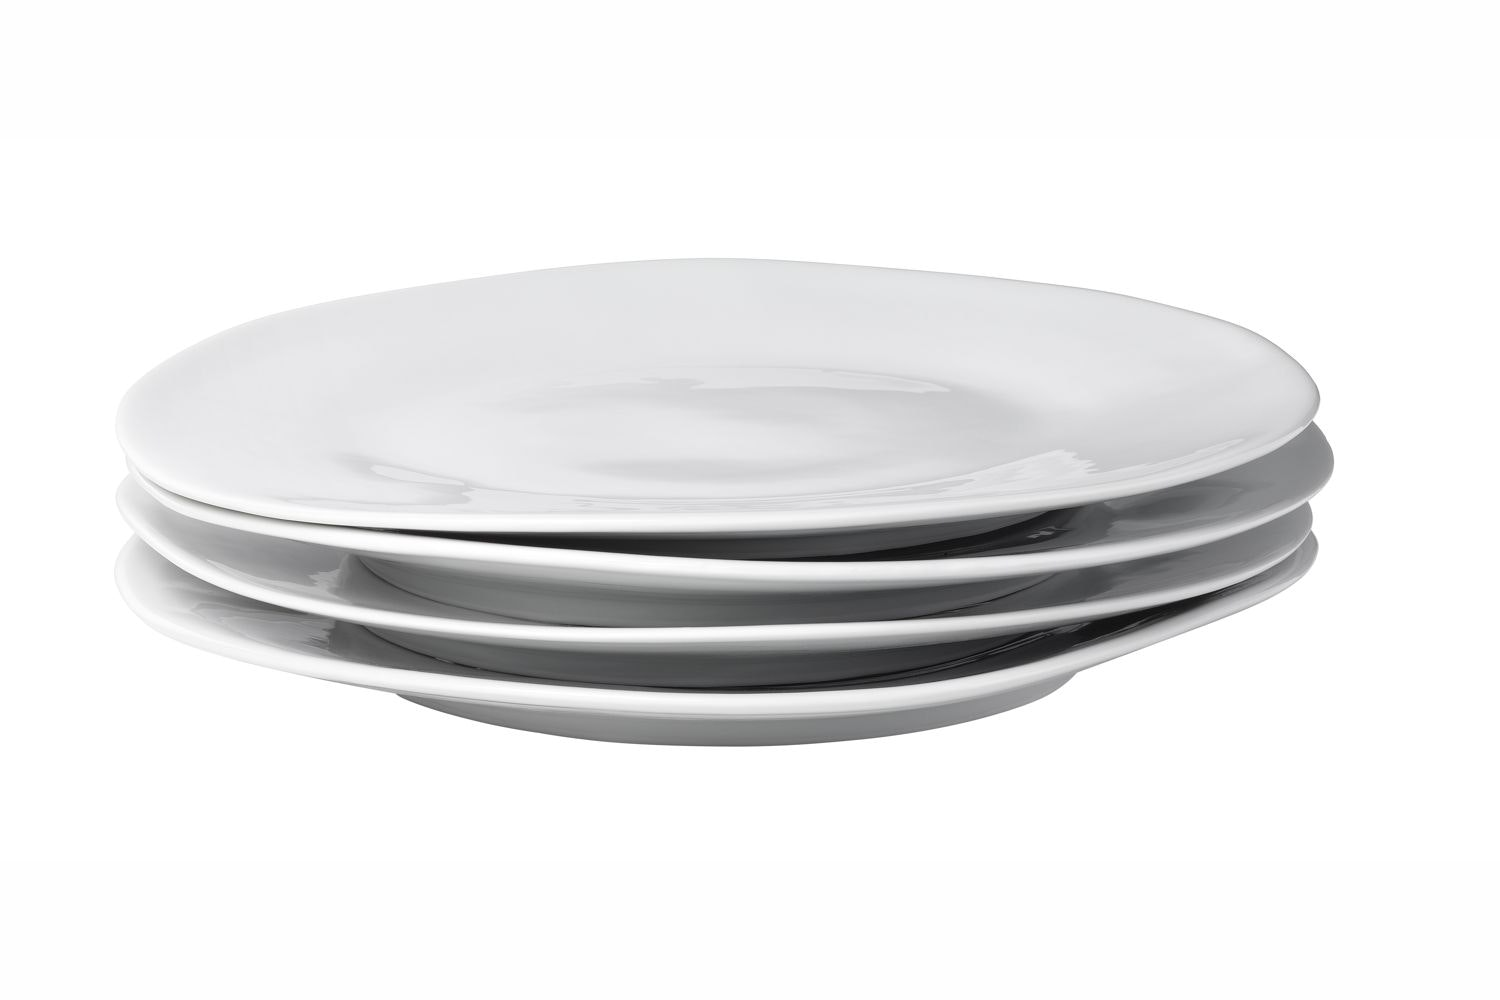 Large Famished Plate by Tse & Tse